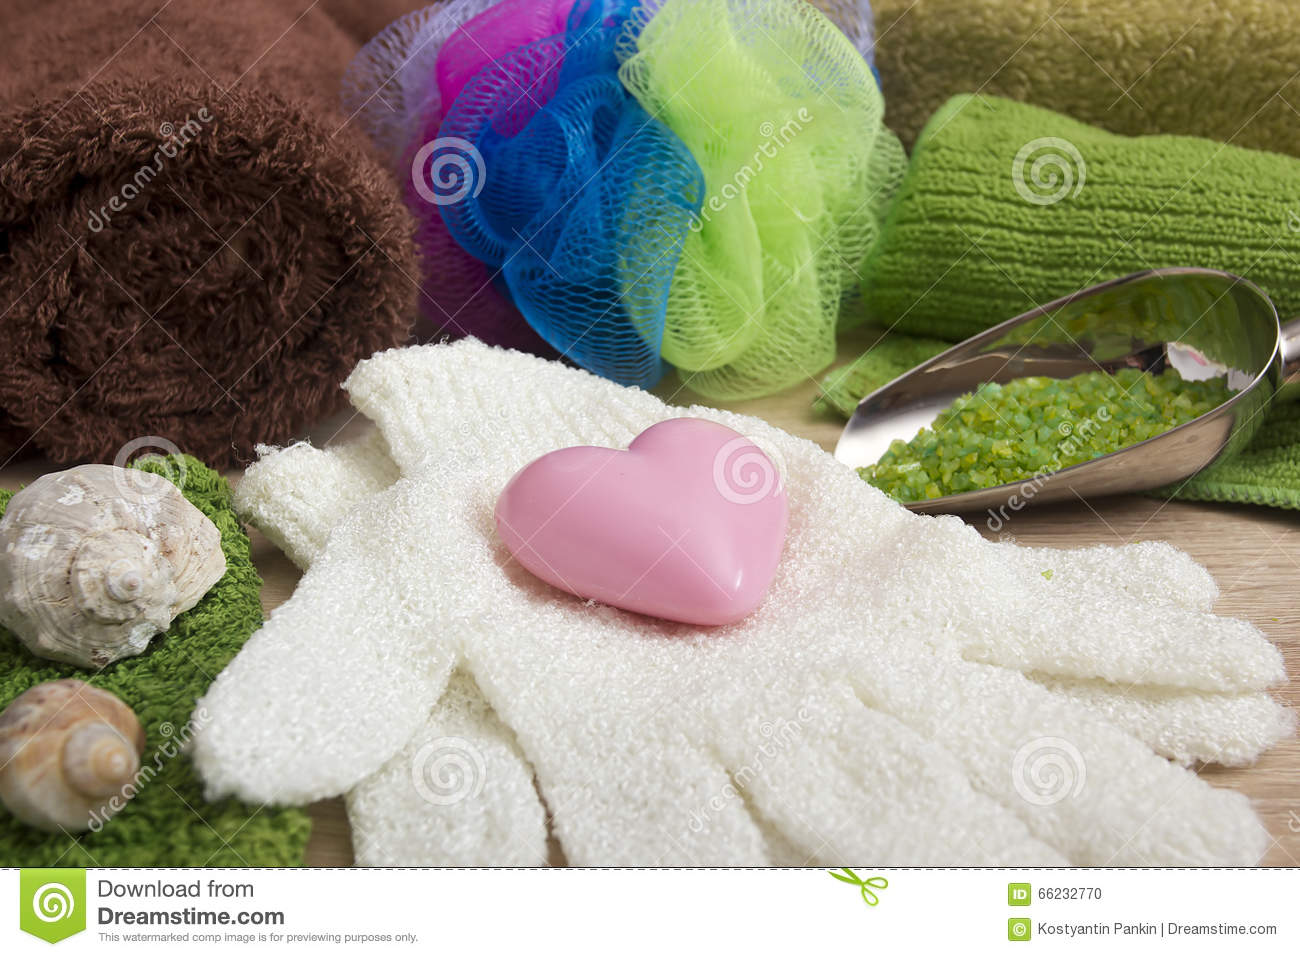 Ingredients For Making Soap At Home Stock Photo - Image of perfume